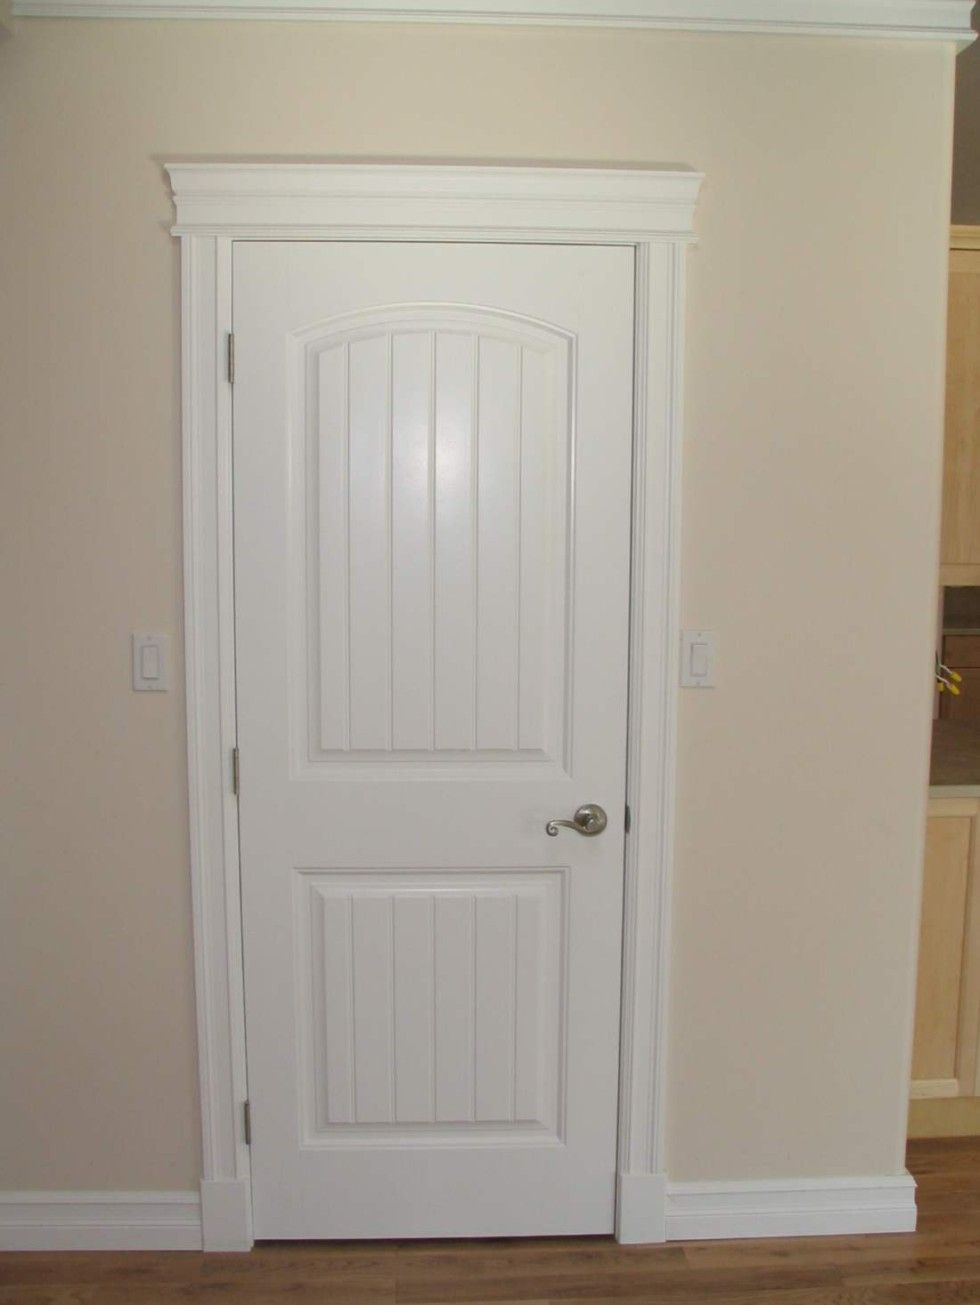 Charmant Door Trim